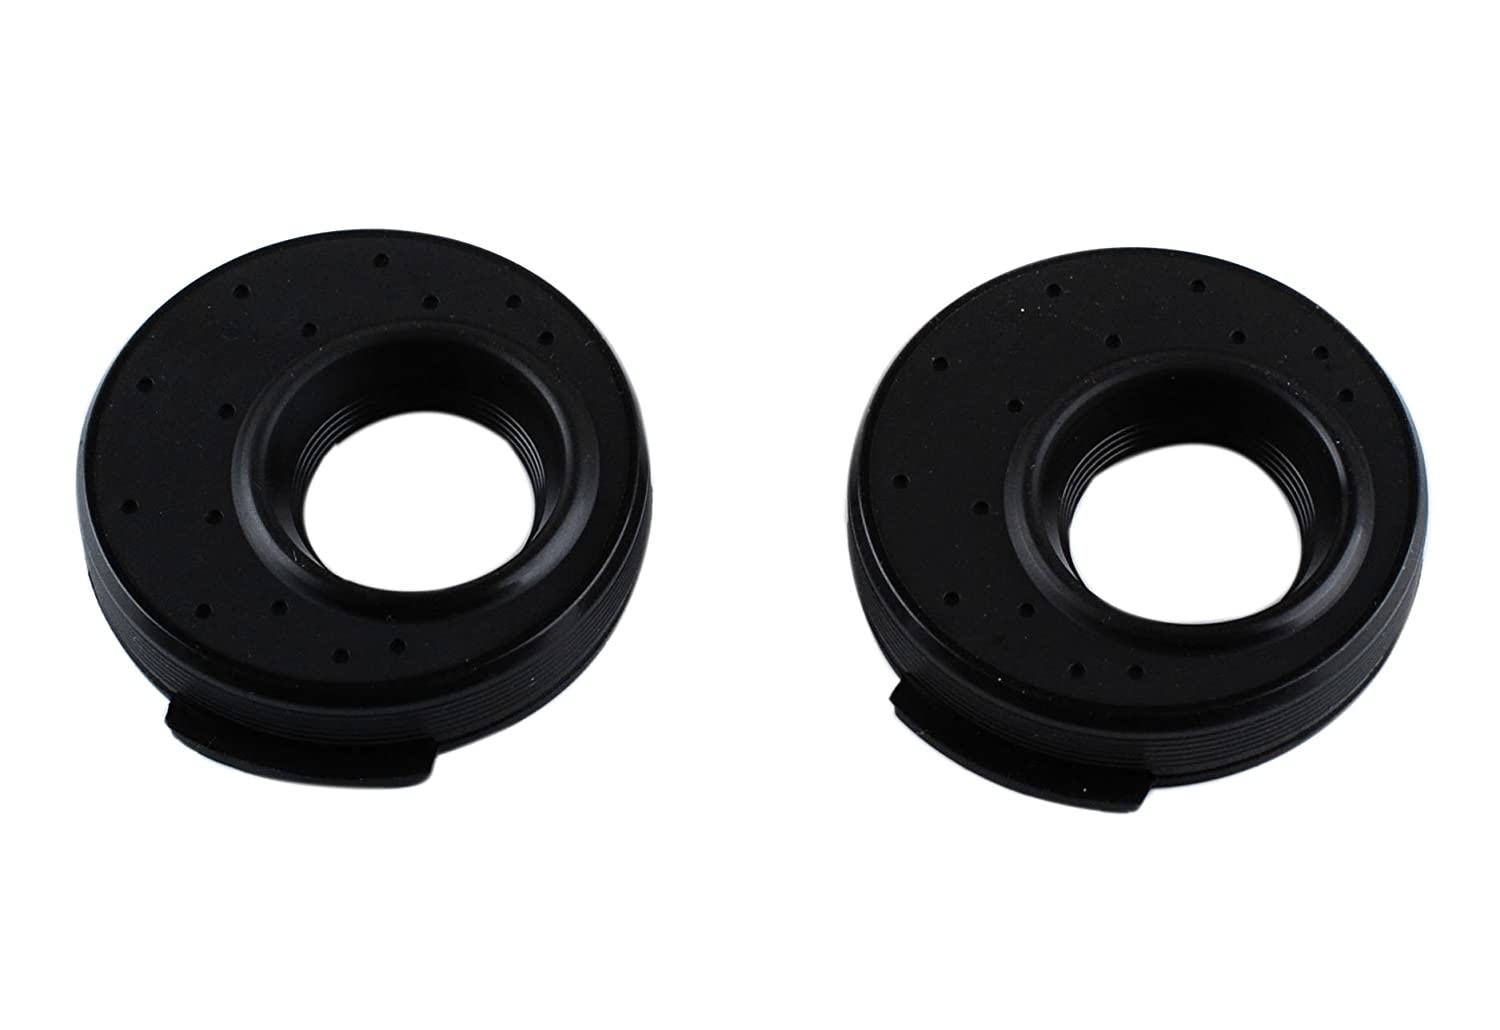 3L3Z-6C535-AA VCT Gaskets Seals Compatible with Ford F150 F250 Variable  Camshaft Timing Control Solenoid Valve Cover Engine Camshafts Parts  2005-2010